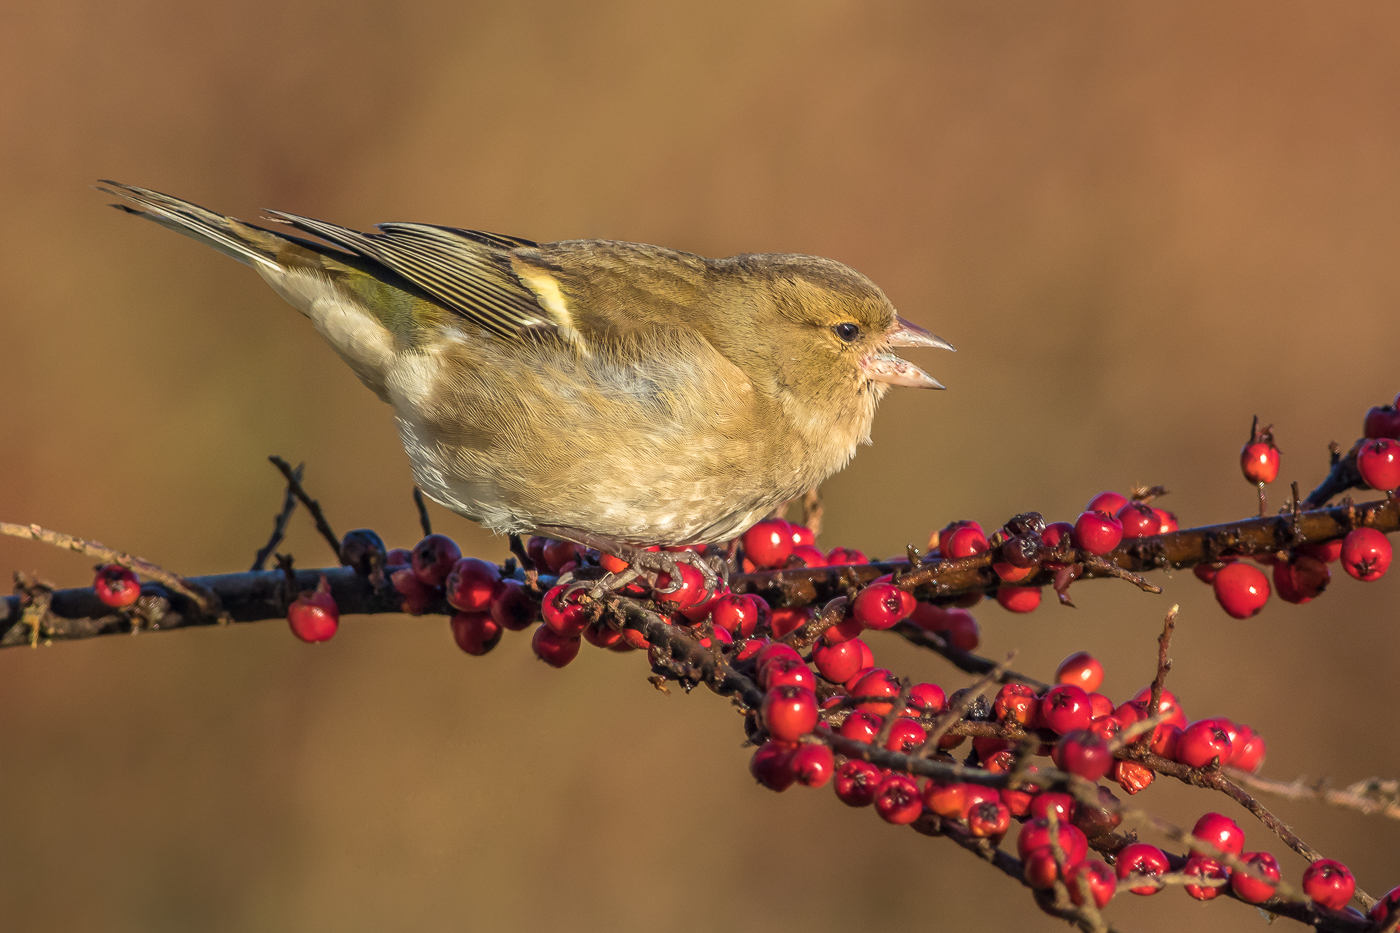 Juvenile Chaffinch on red Berries